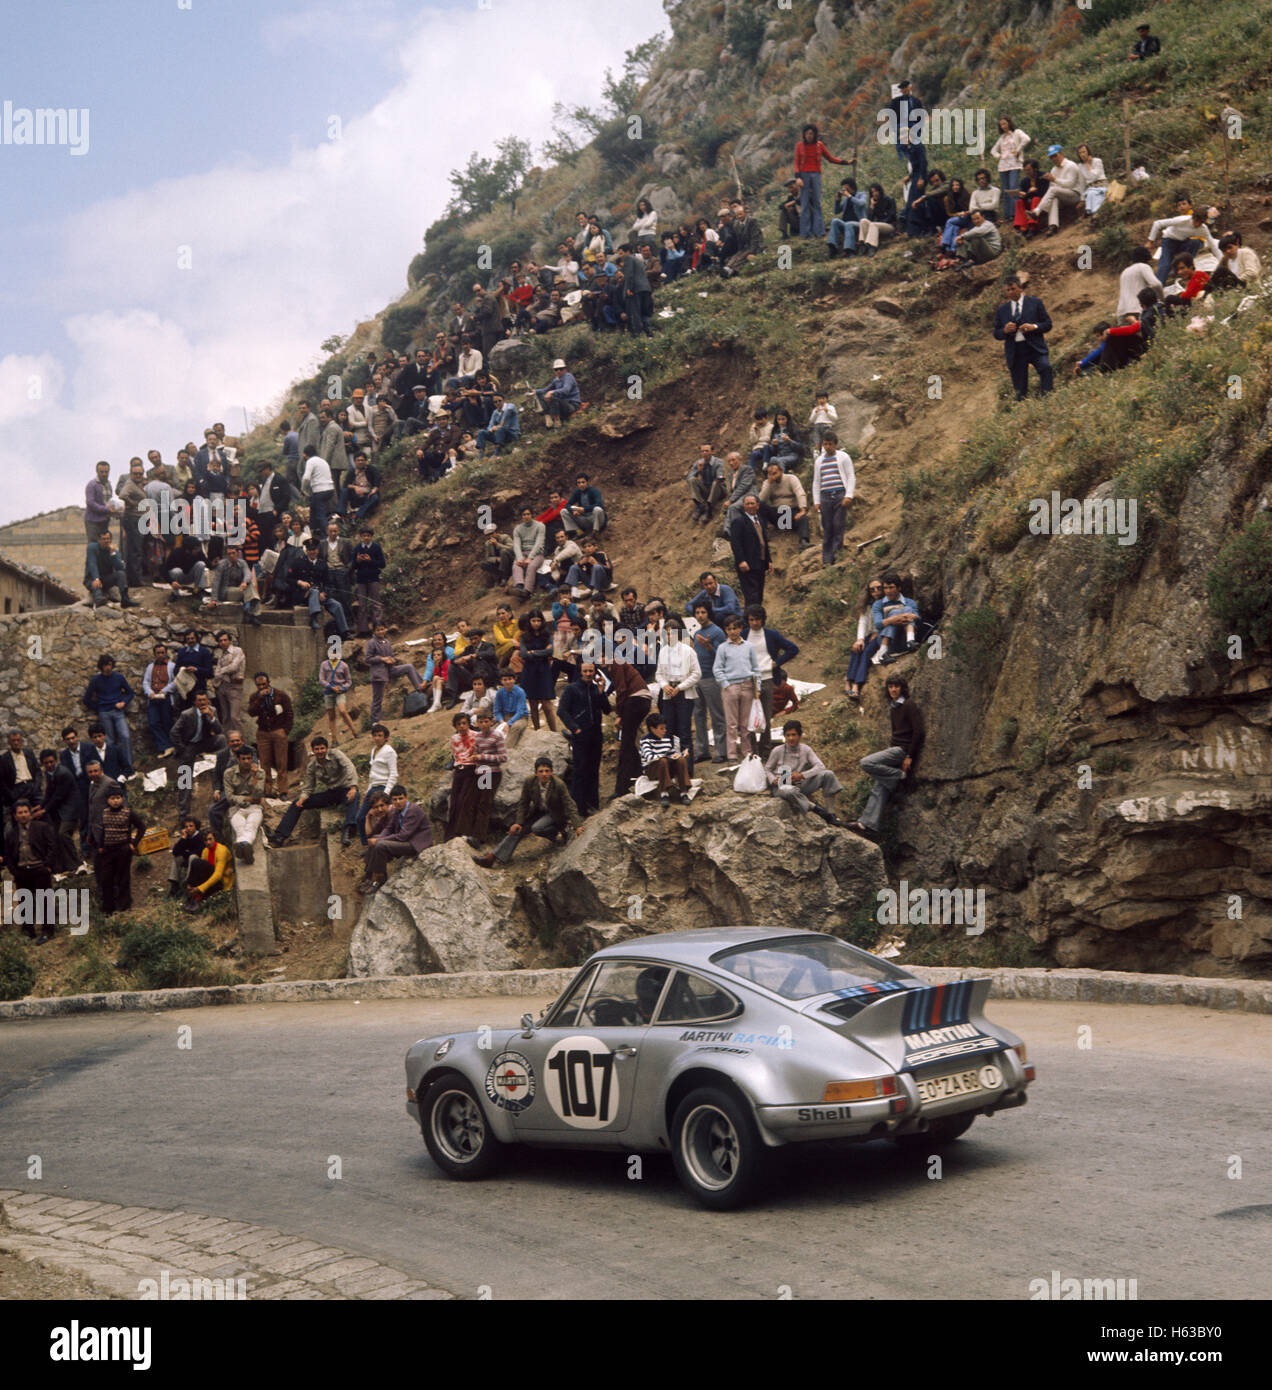 107 Günter Steckkönig and Giulio Pucci in a  Porsche Carrera 911 finished 6th in the Targa Florio 13 May - Stock Image